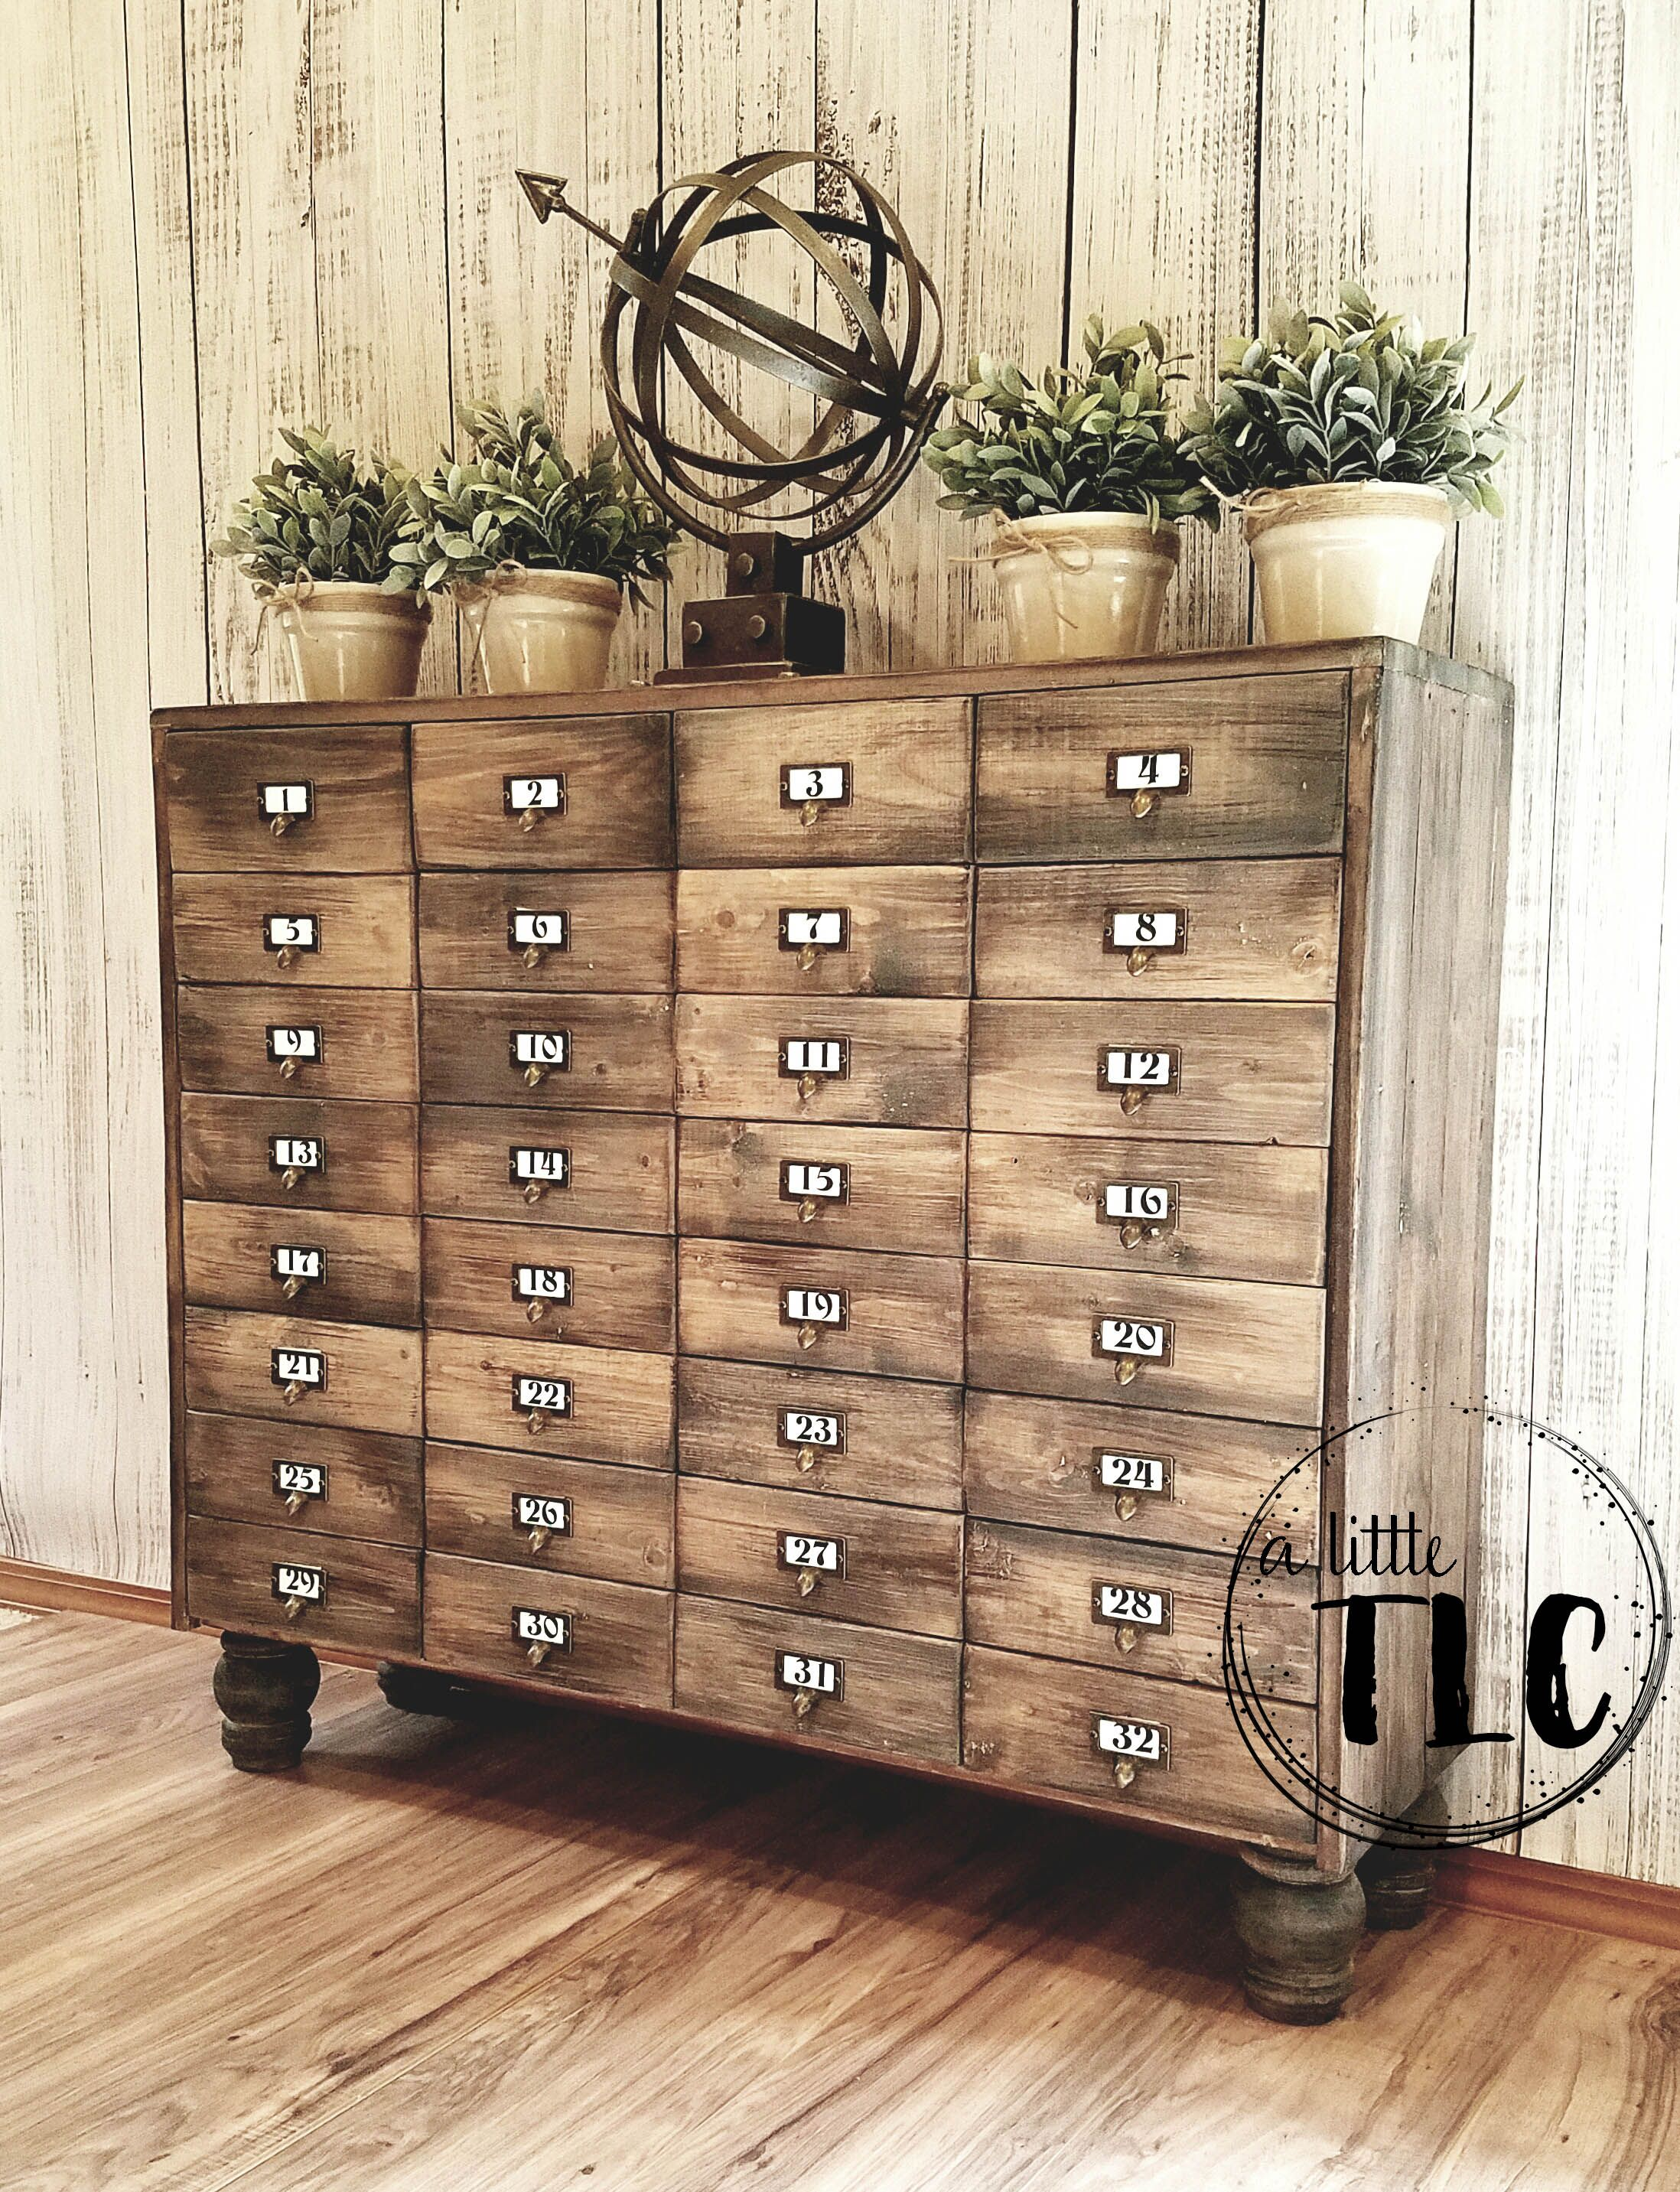 Custom Built And Finished Apothecary Cabinet Apothecary Decor